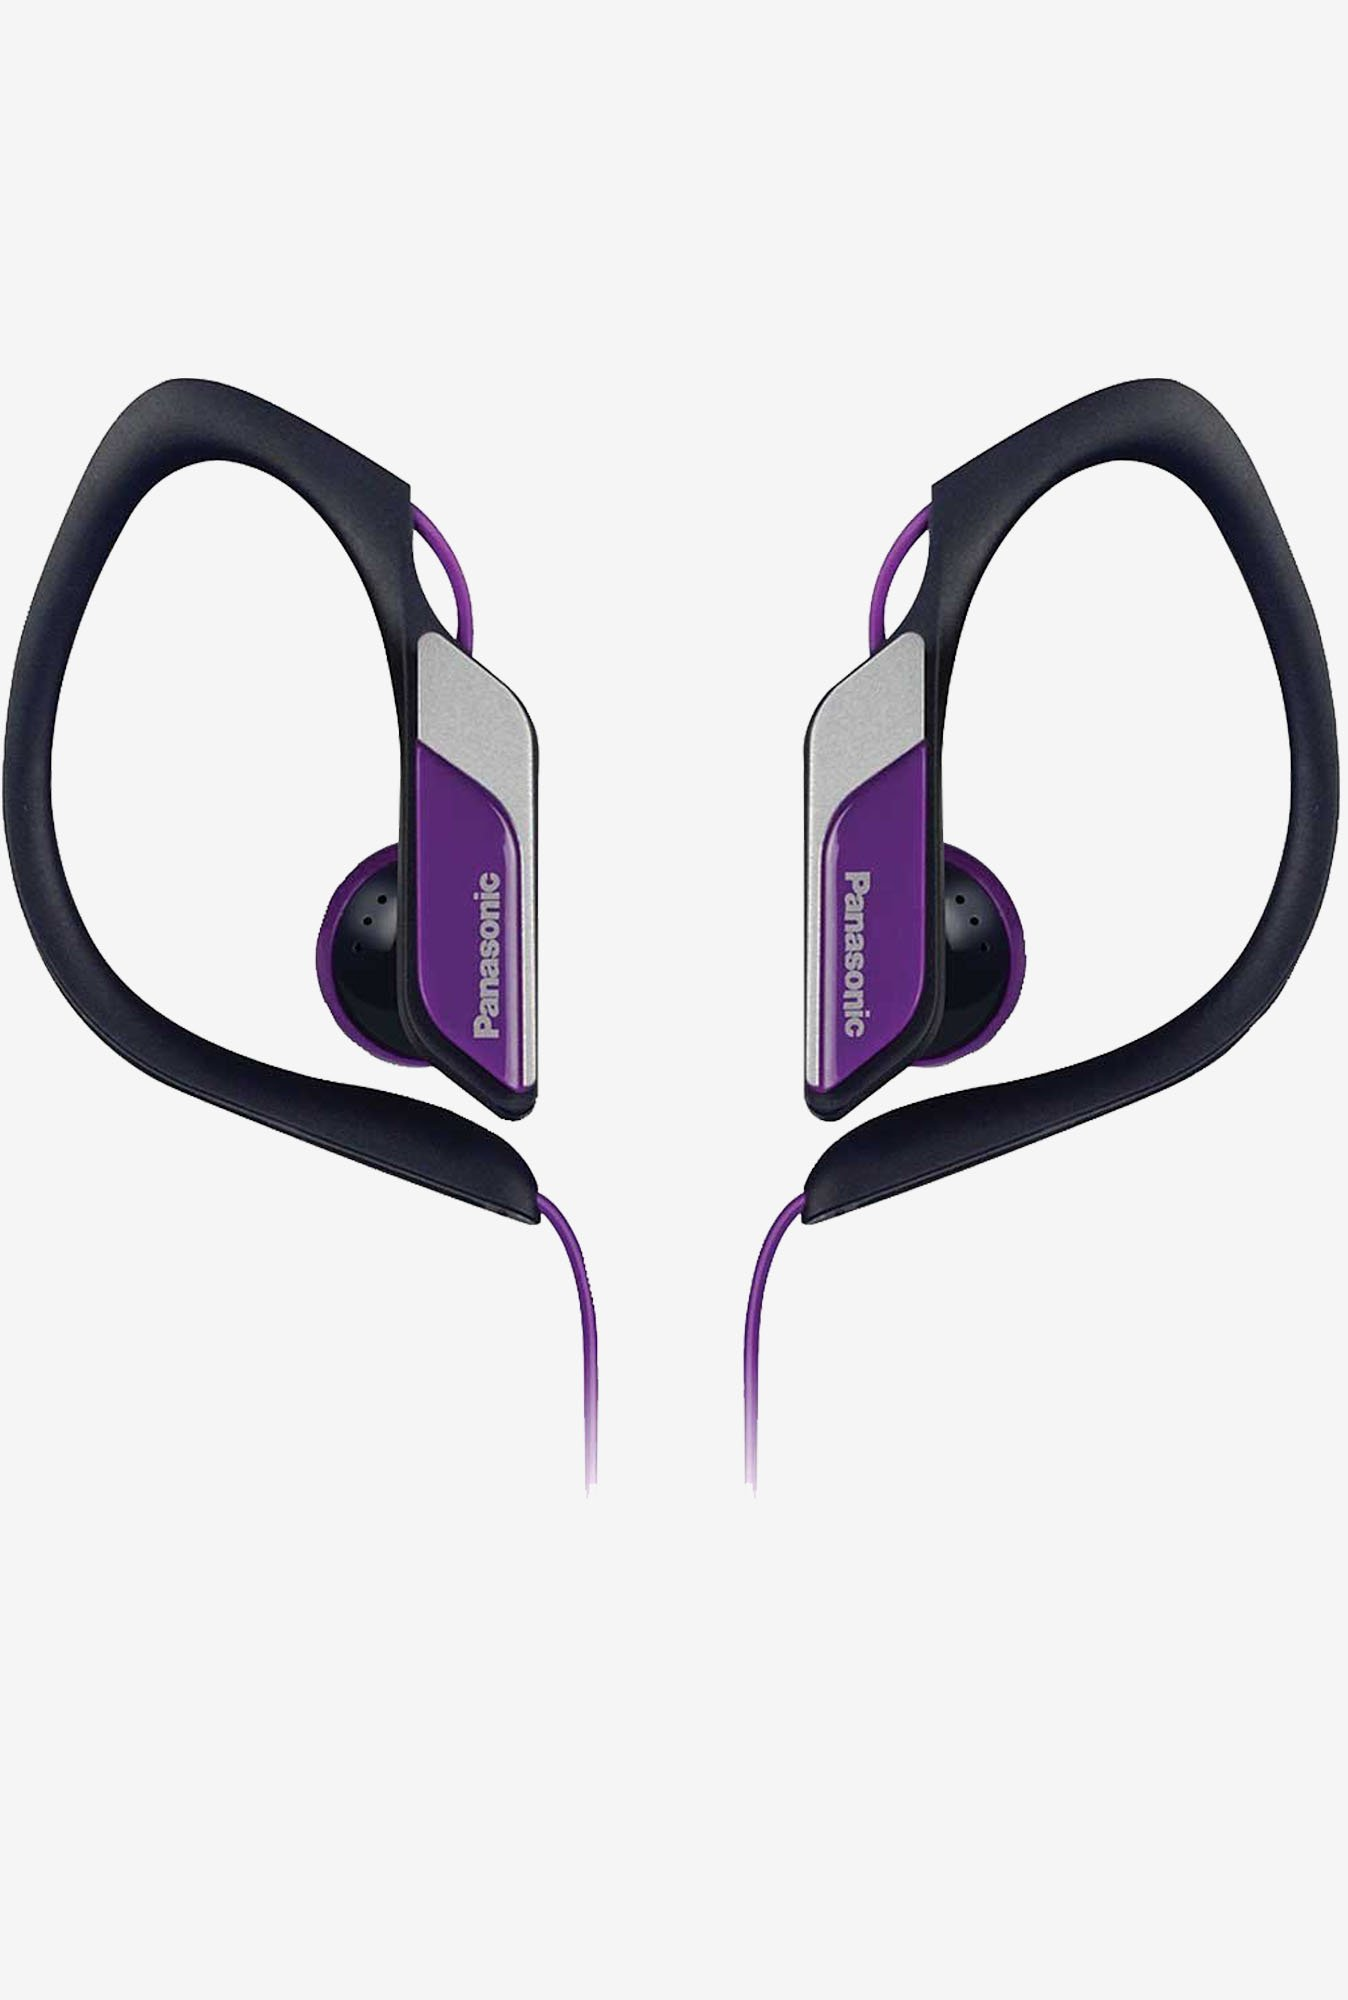 Panasonic Lightweight Sweat Proof Active Headphones (Violet)